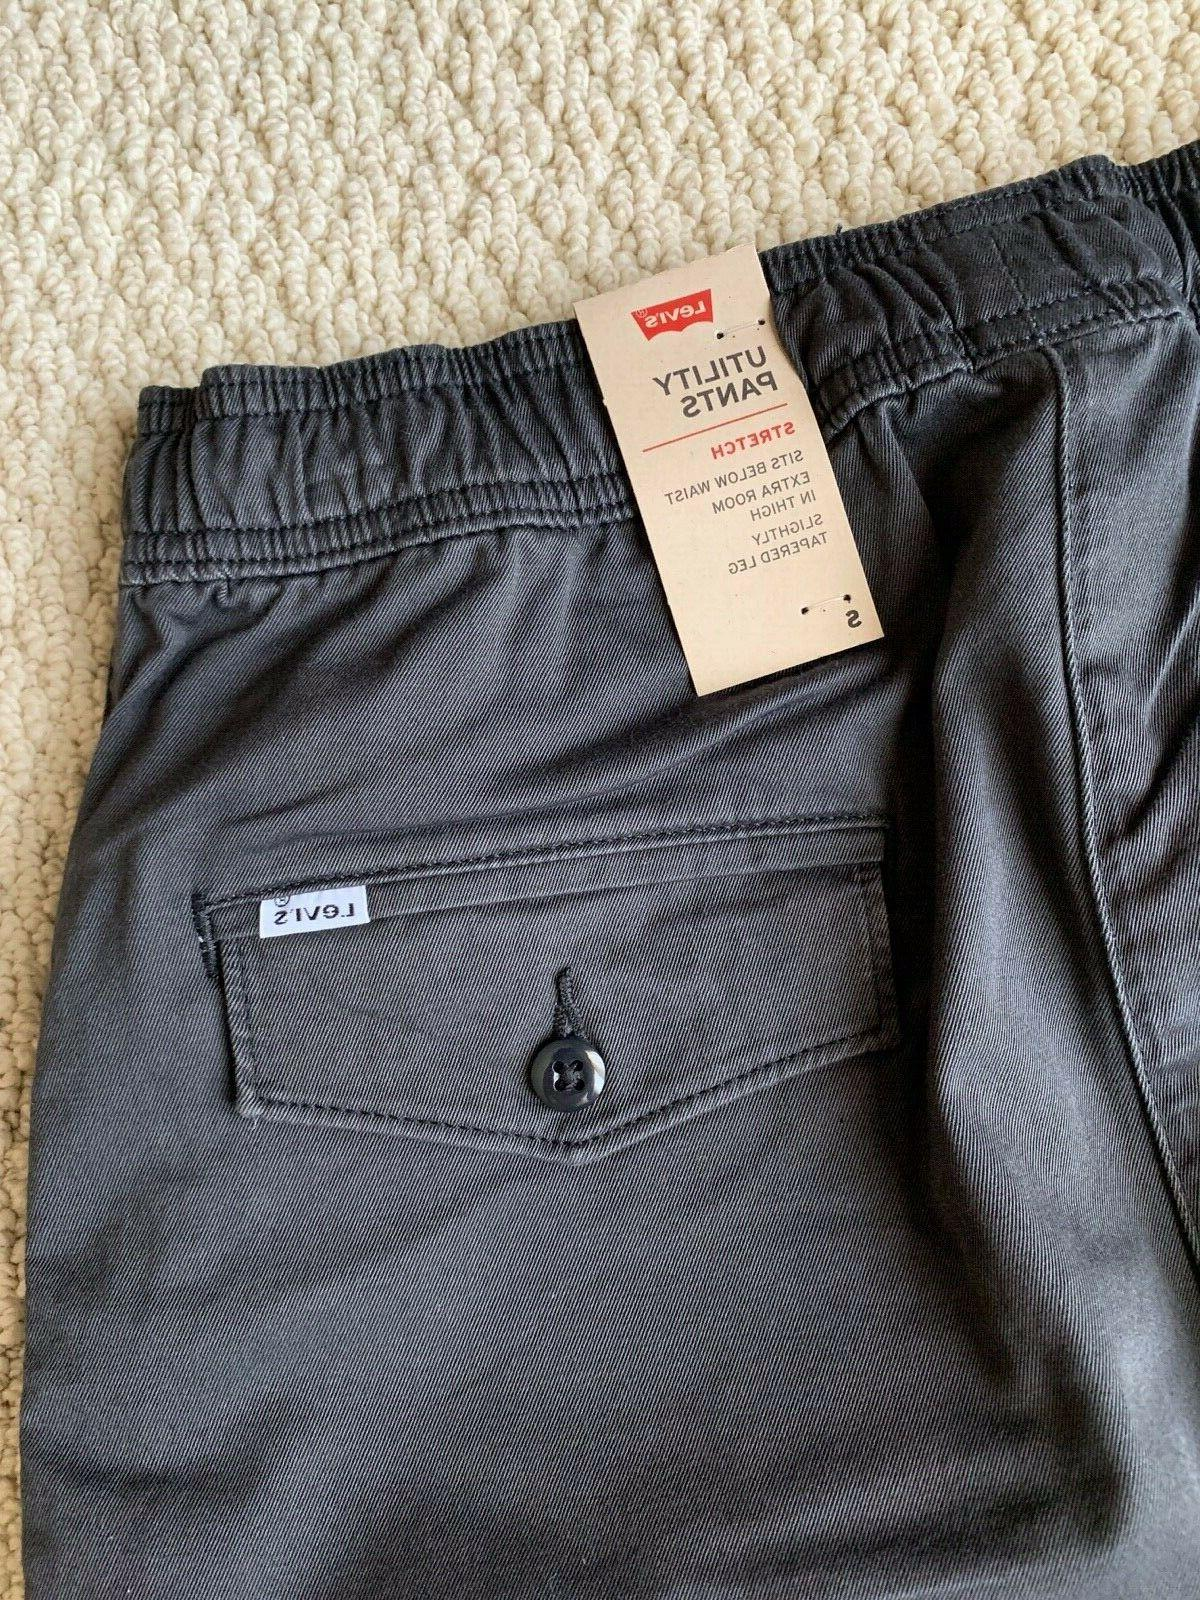 NWT Men's Utility Pocket Jogger Pants